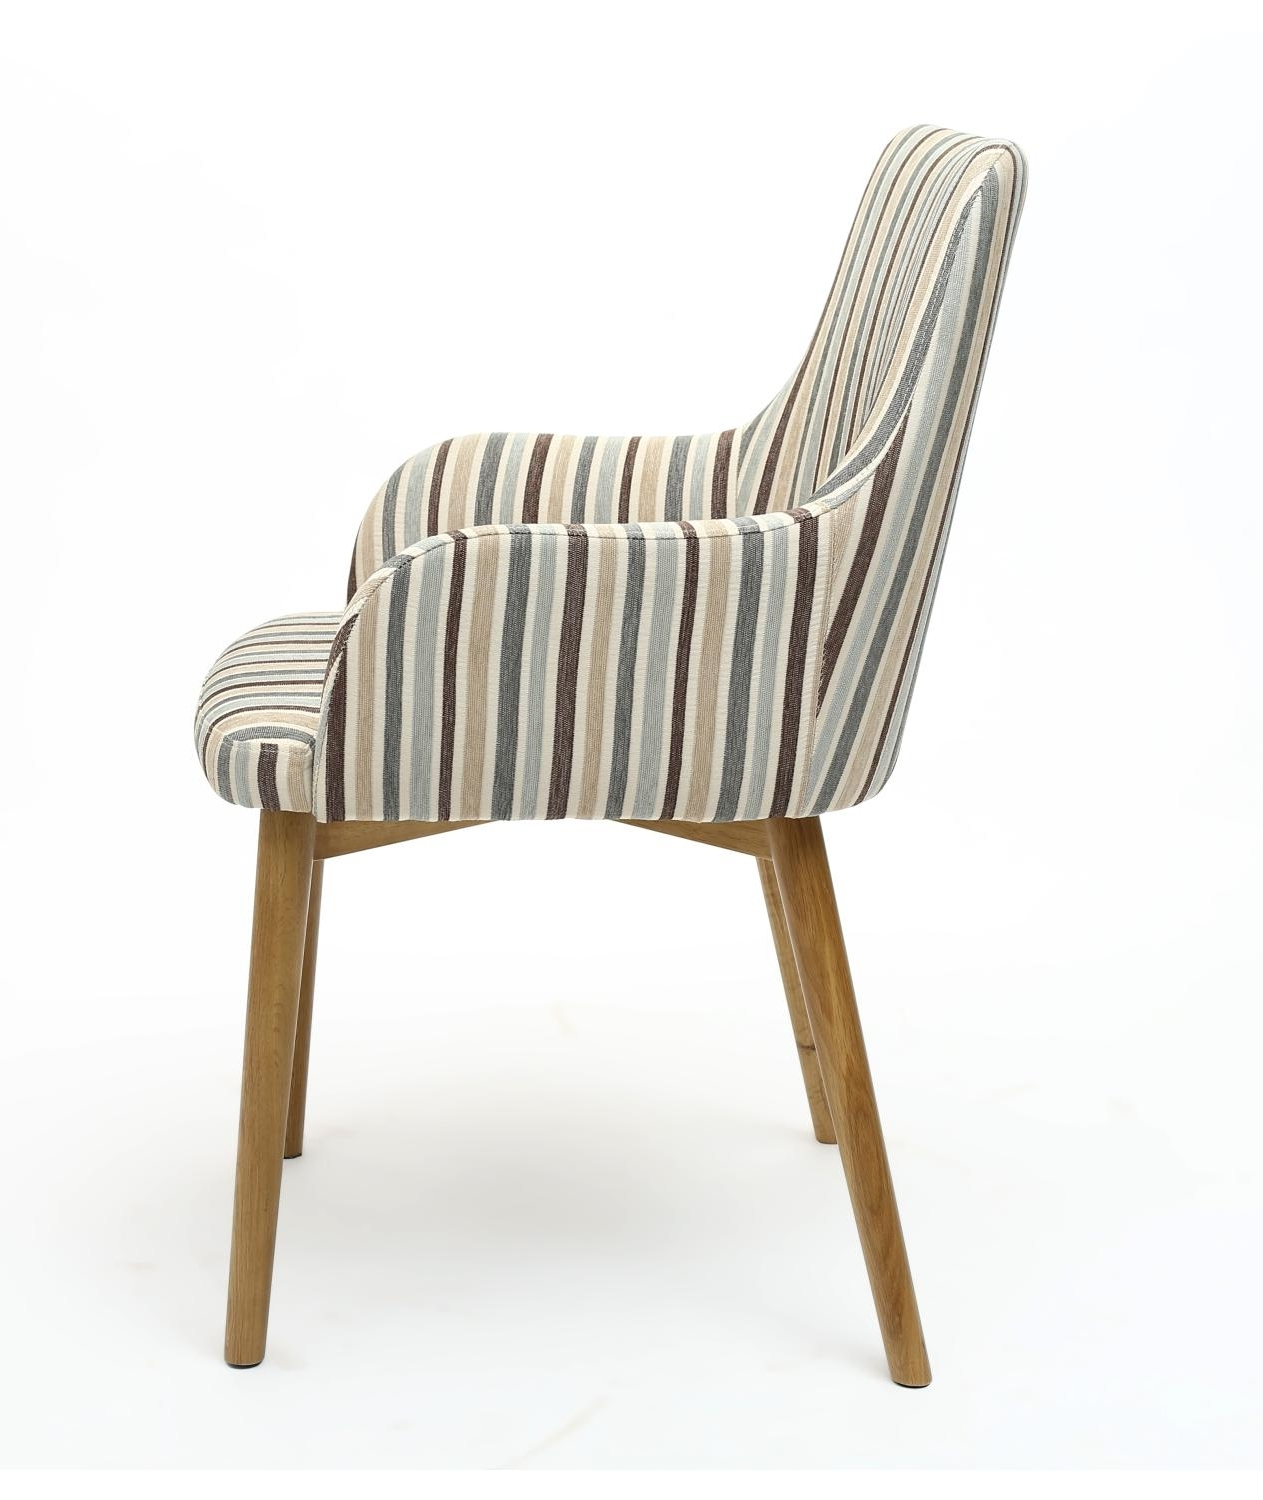 Latest Sidcup Duck Egg Blue Stripe Dining Chair – L'amore Furnishings Throughout Blue Stripe Dining Chairs (View 10 of 20)